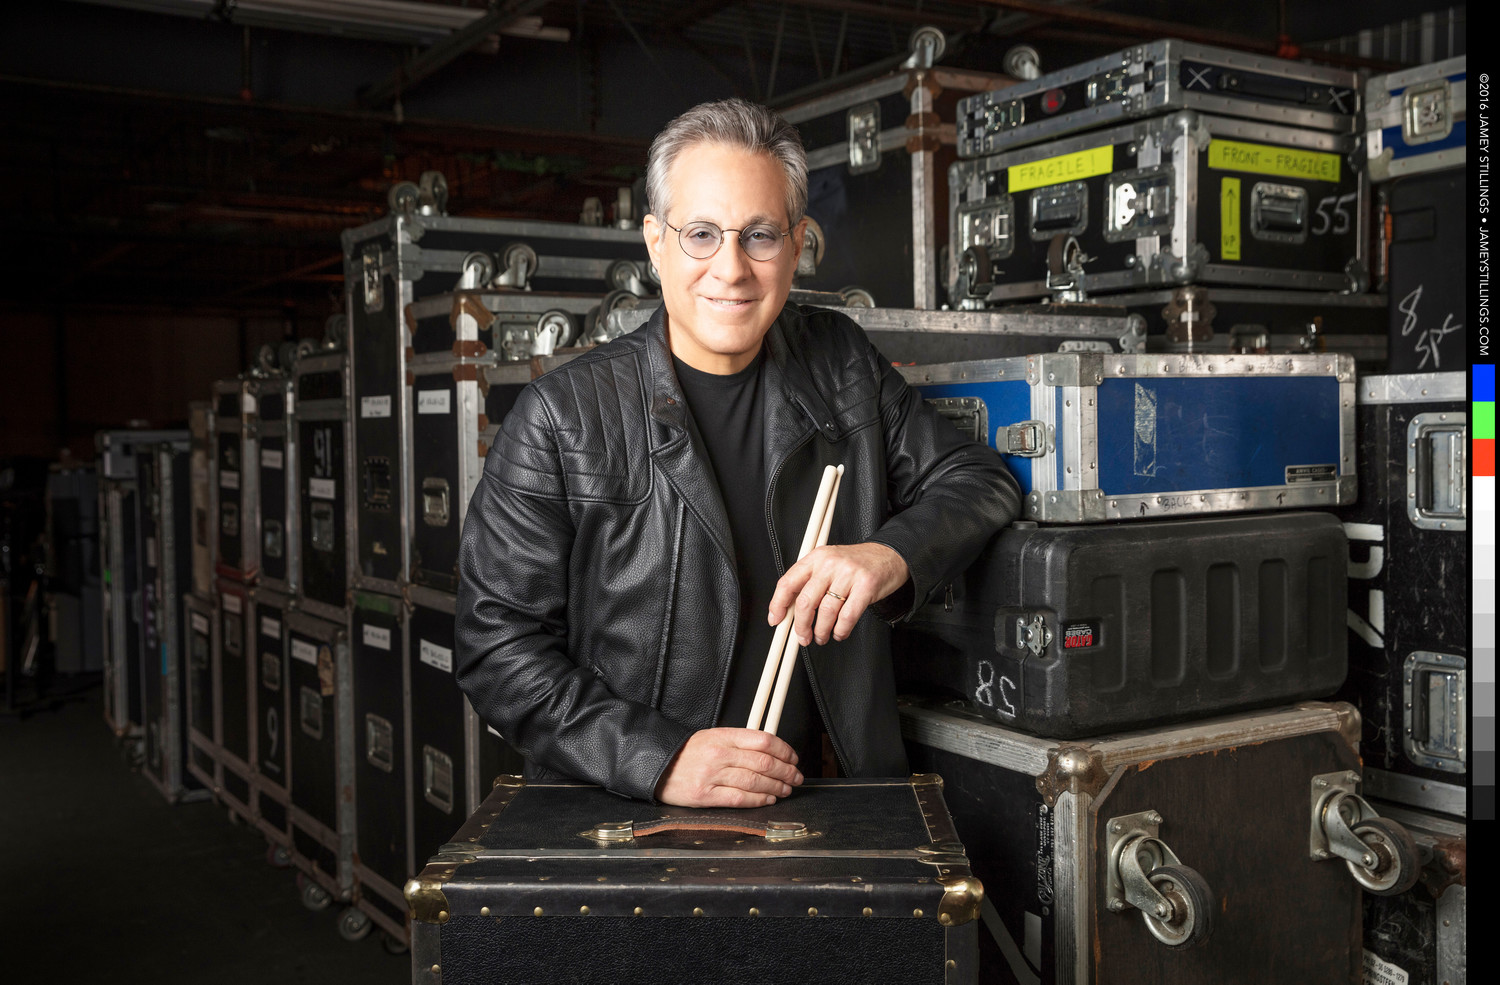 Max Weinberg welcomes audience requests on his popular tour.